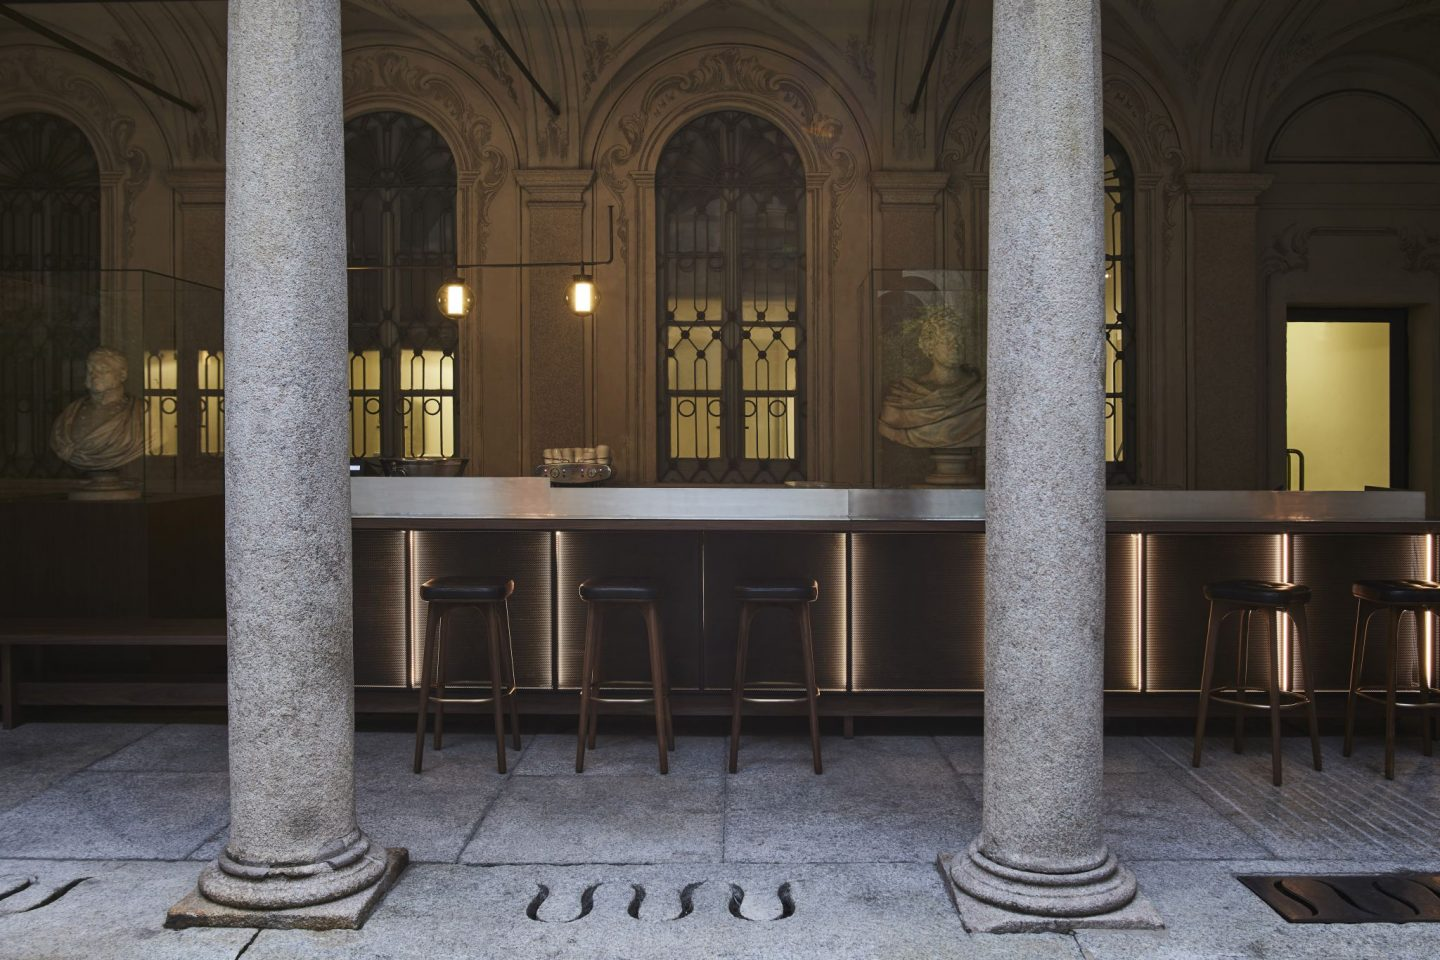 Elle Decor Grand Hotel the Invisible Rooms by Neri&Hu, Hellopeagreen, Milan, travel